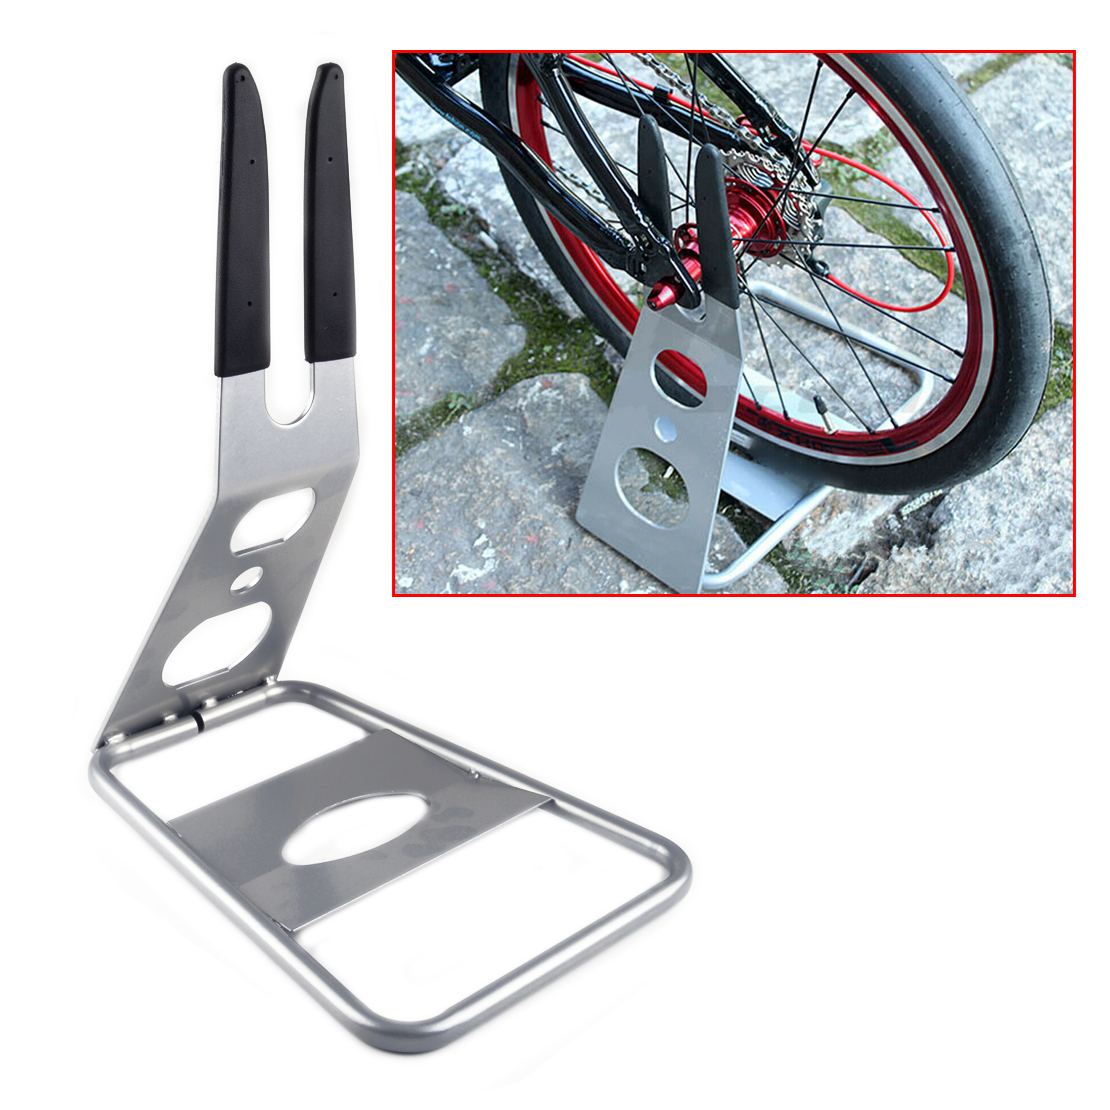 Floor Stand Holder Triangle Rear Hub Mount Bike//Bicycle Storage Rack Accessories